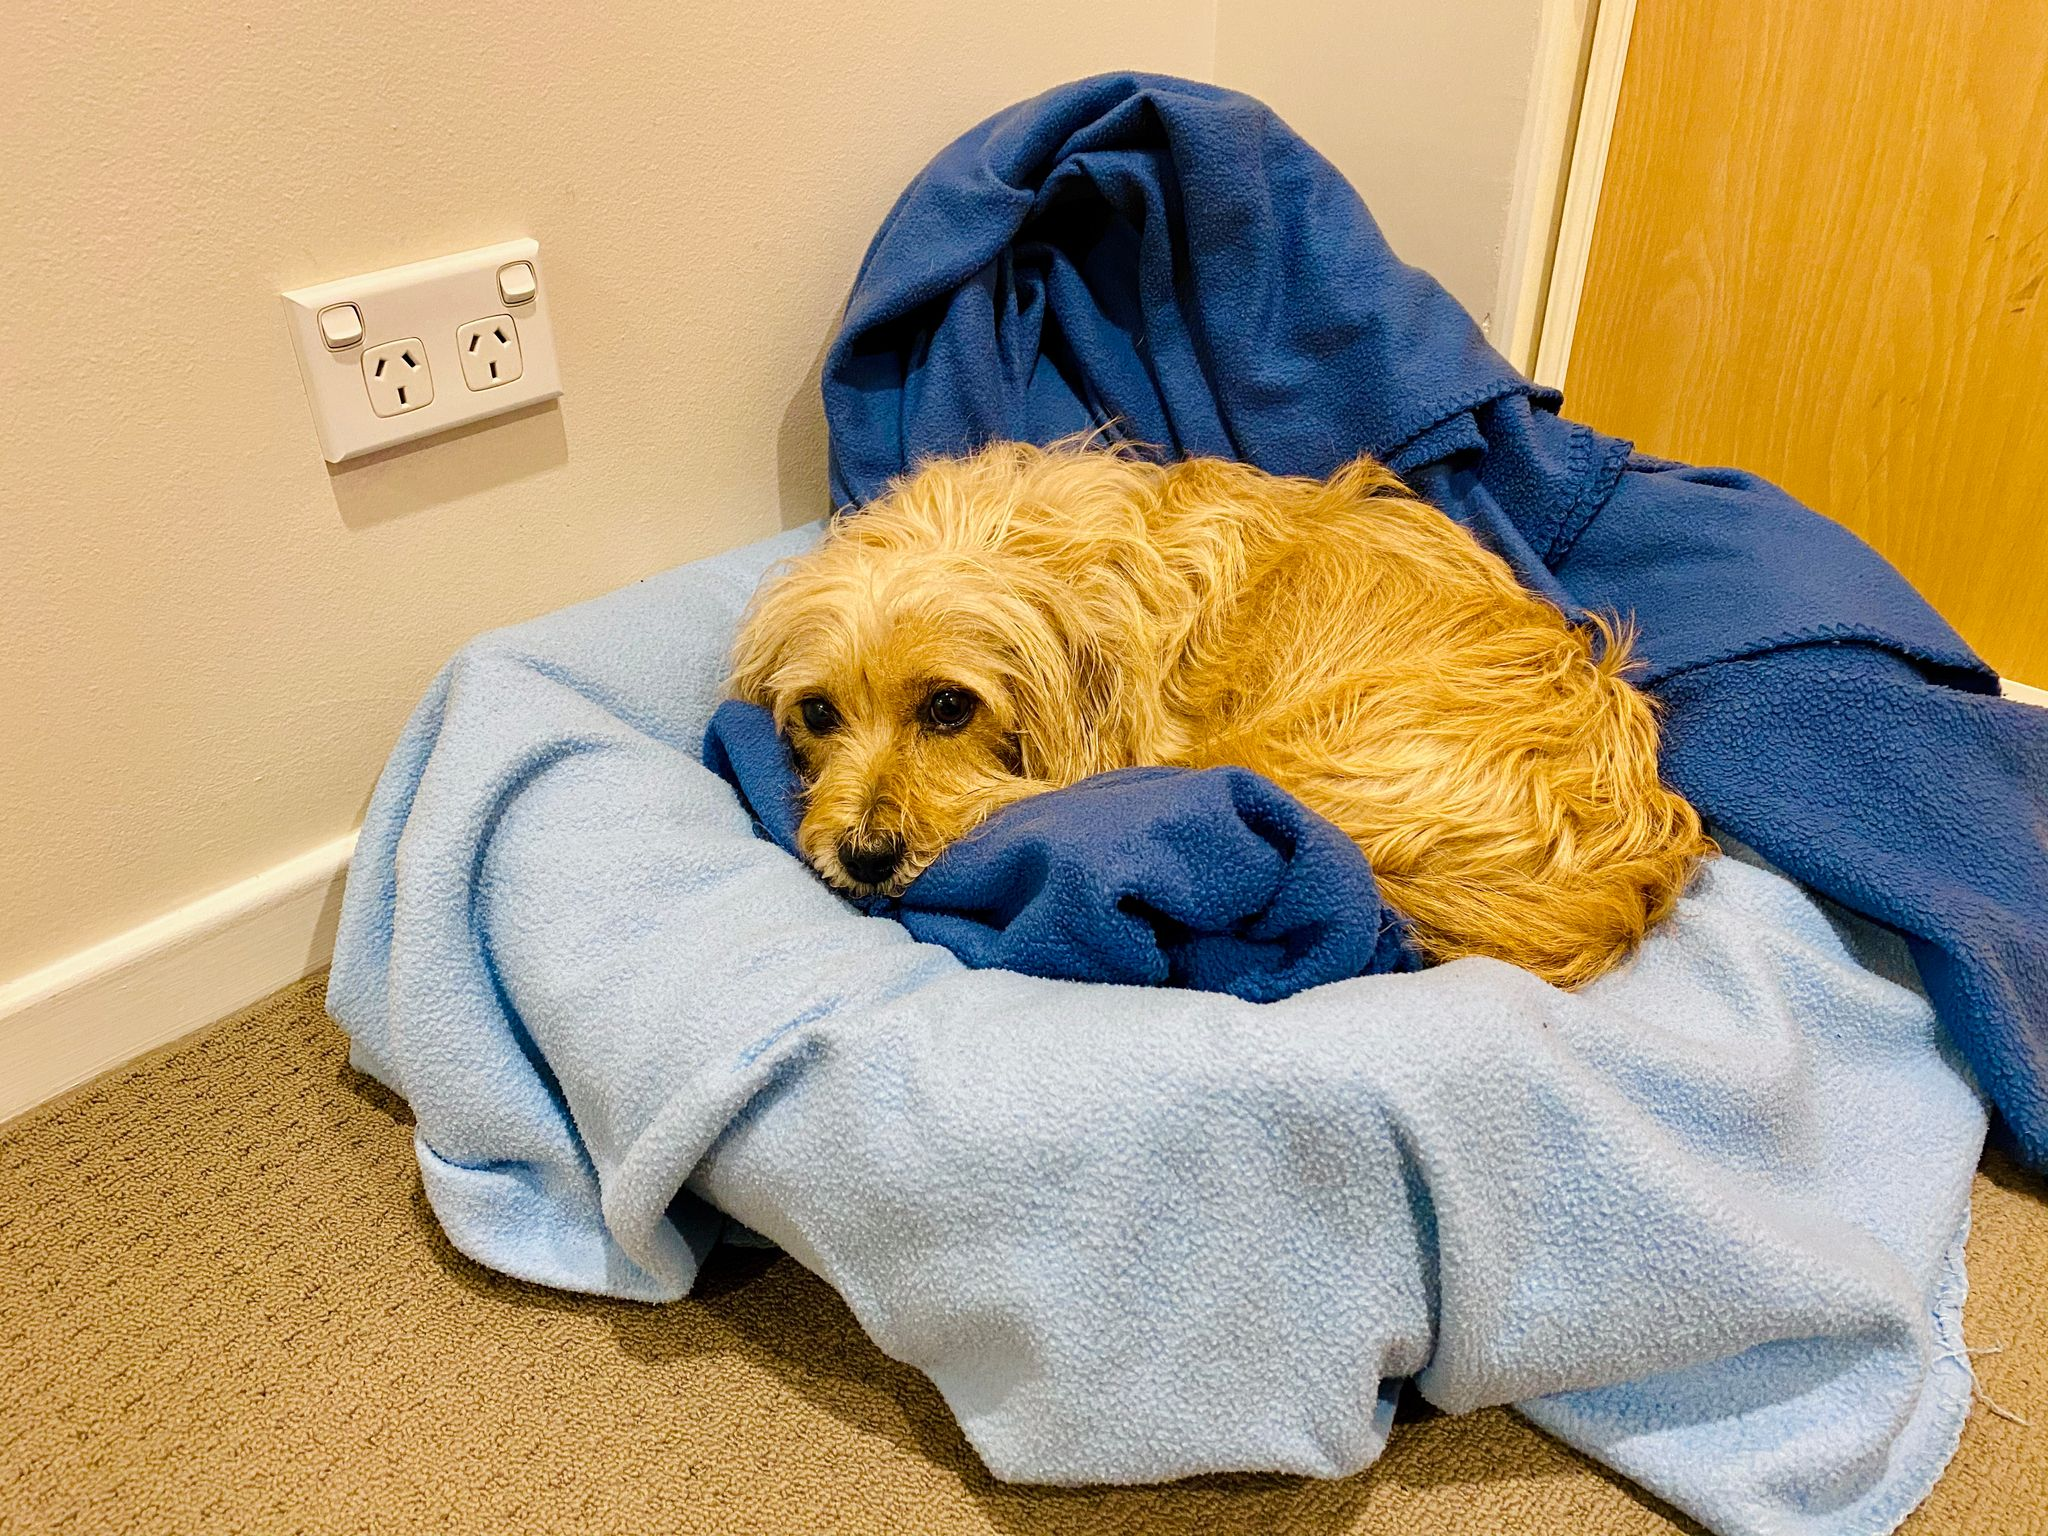 A small scruffy blonde dog lying in his dog bed, with the blanket he's lying on pointing up behind him giving the impression of the back of a throne.